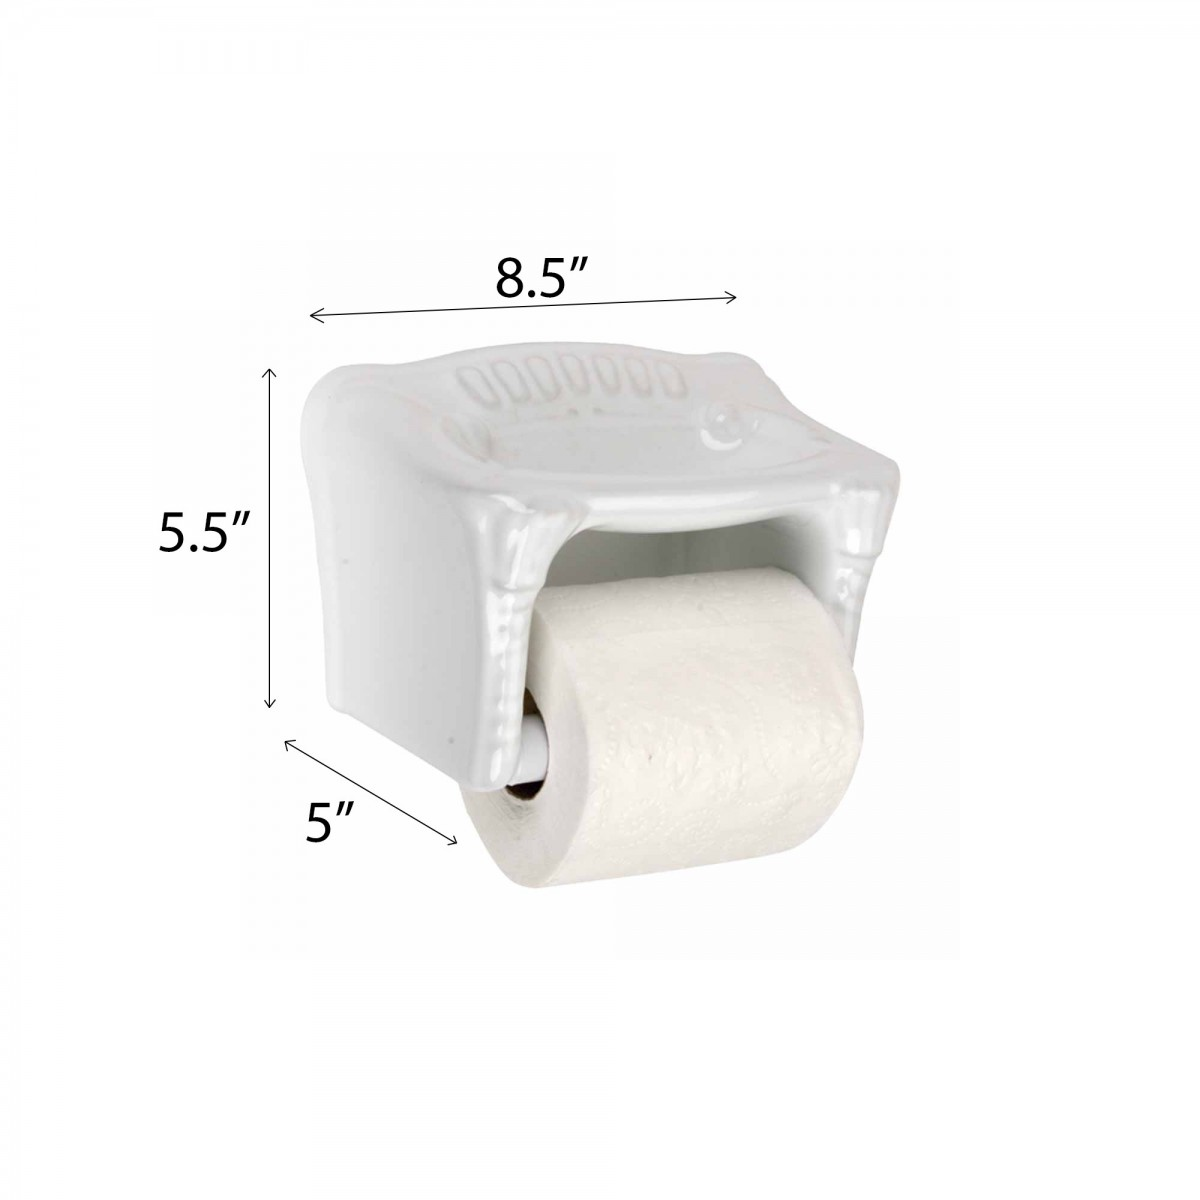 spec toilet paper holder white ceramic porcelain tissue holder